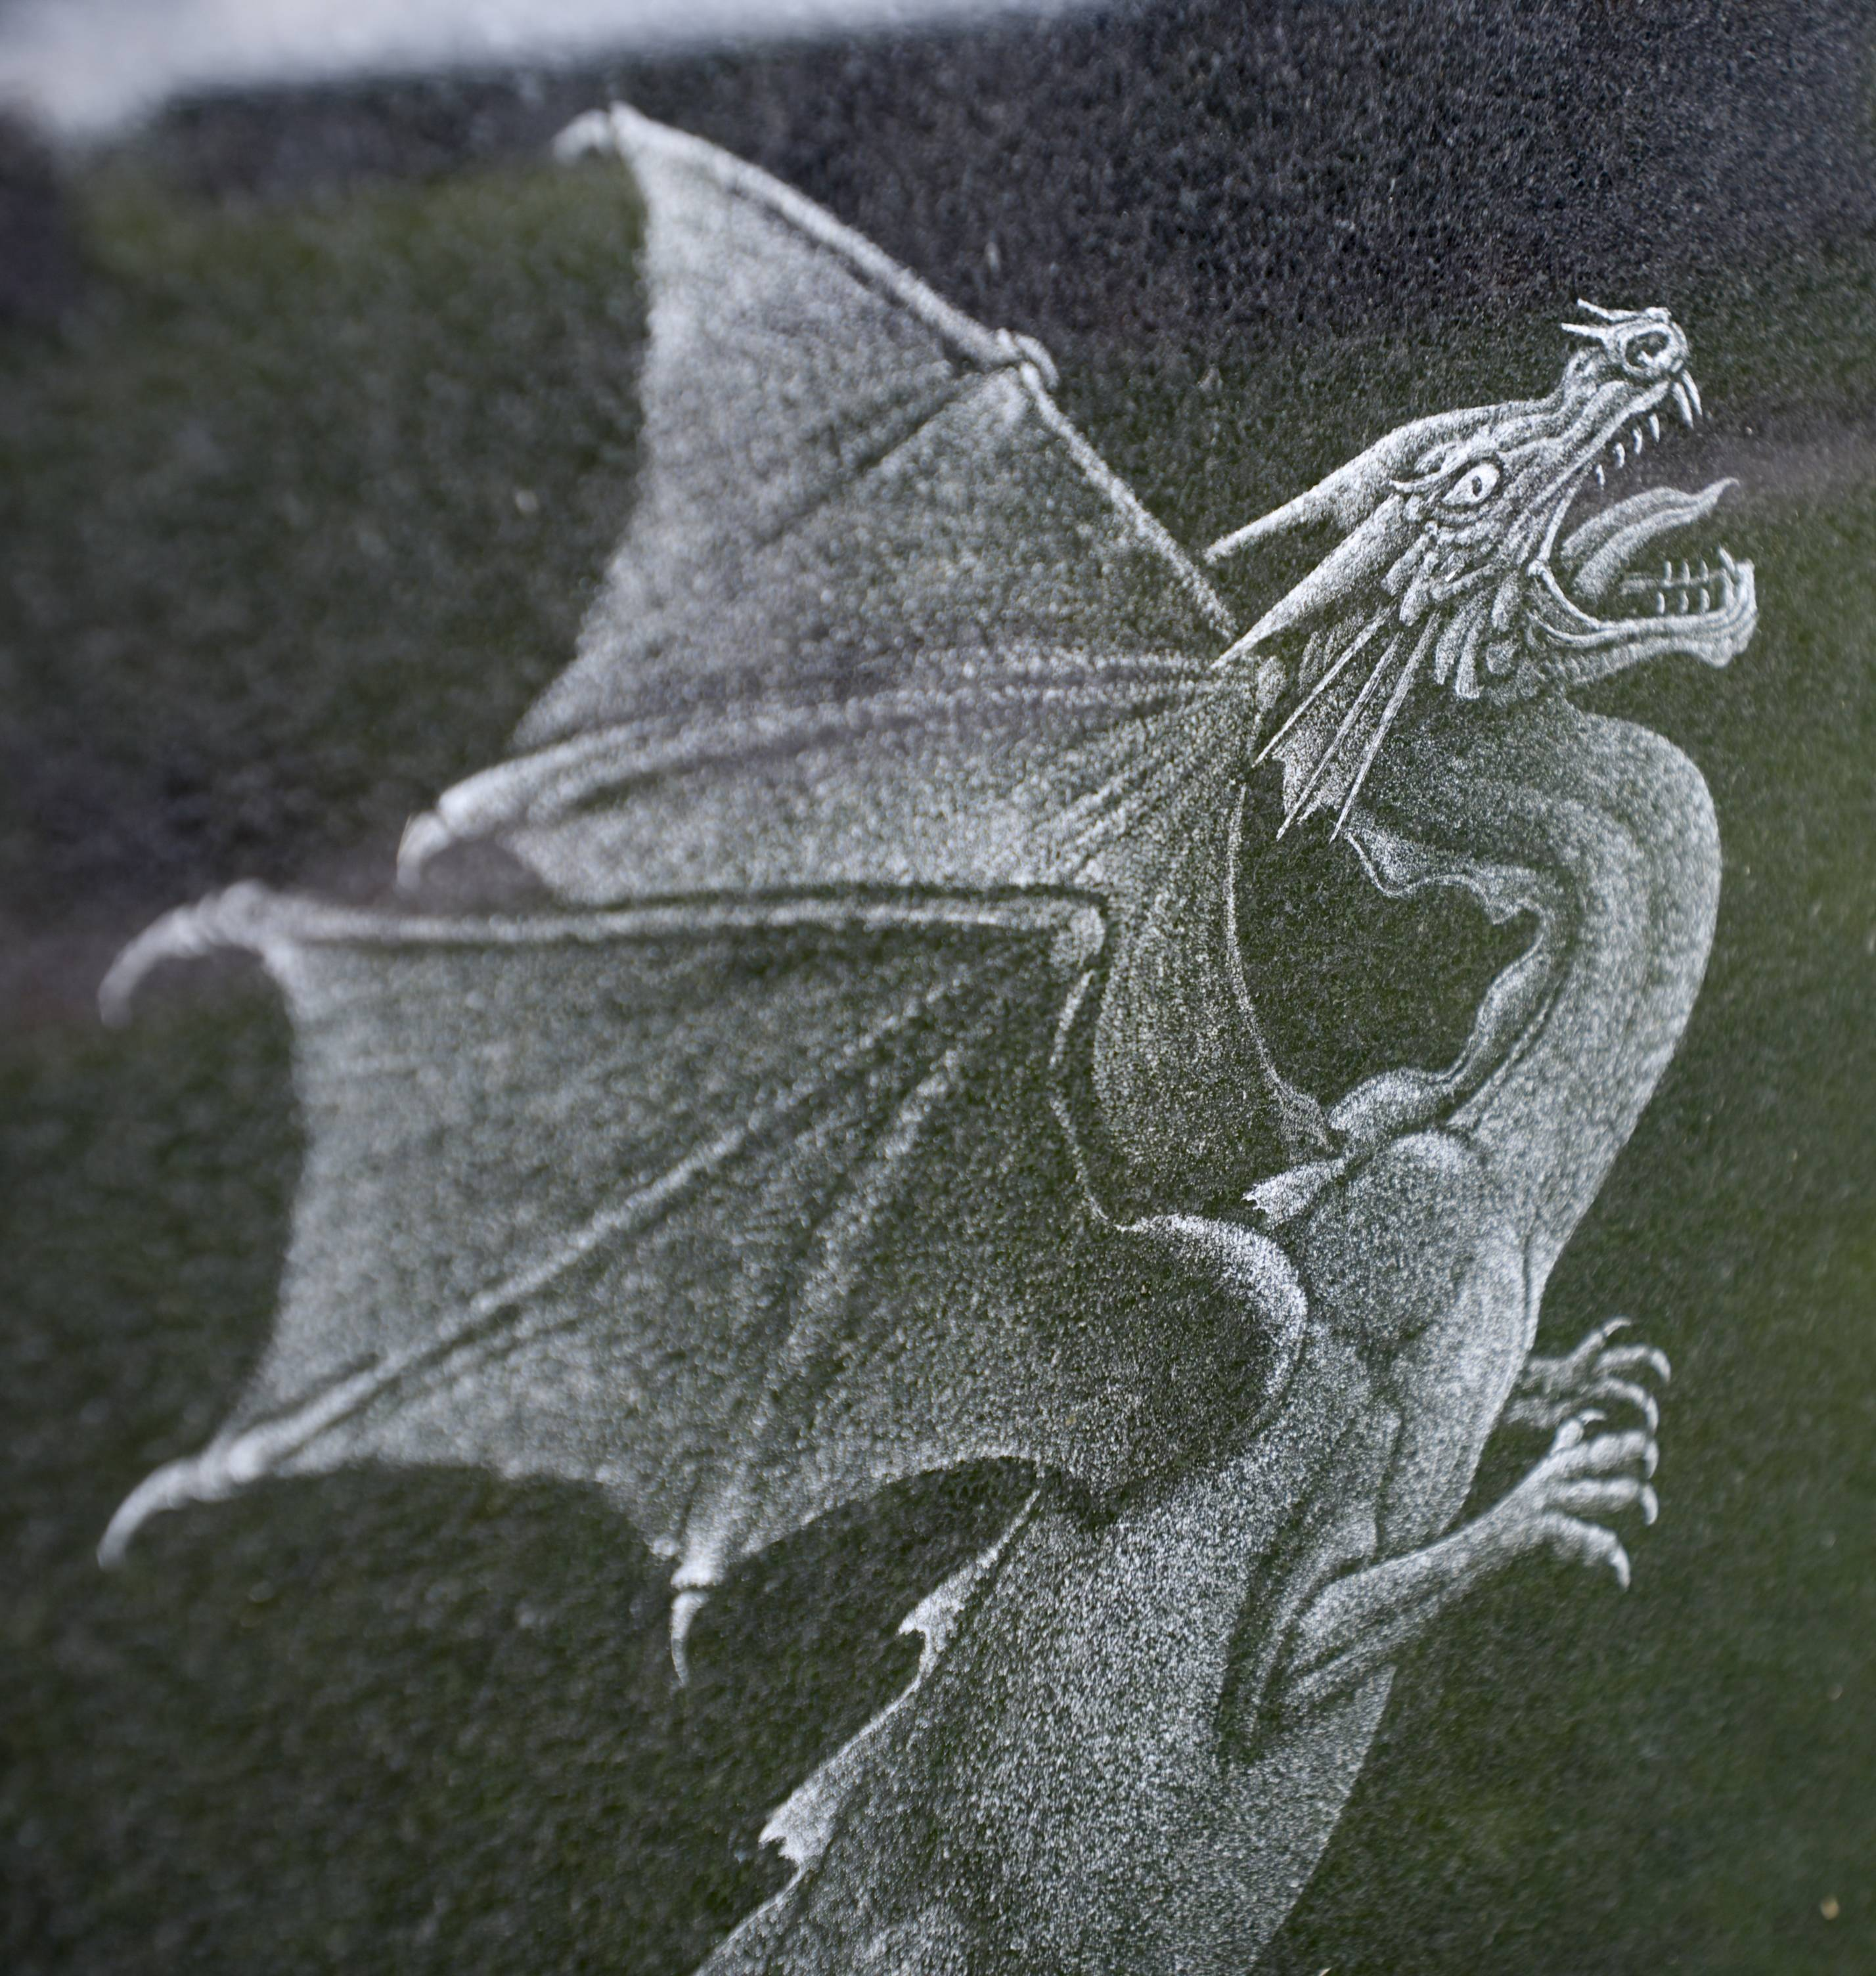 Customers sometimes ask for unique images to be placed on the marker of a loved one. Shoaf hand-etched this dragon into a black granite grave maker.